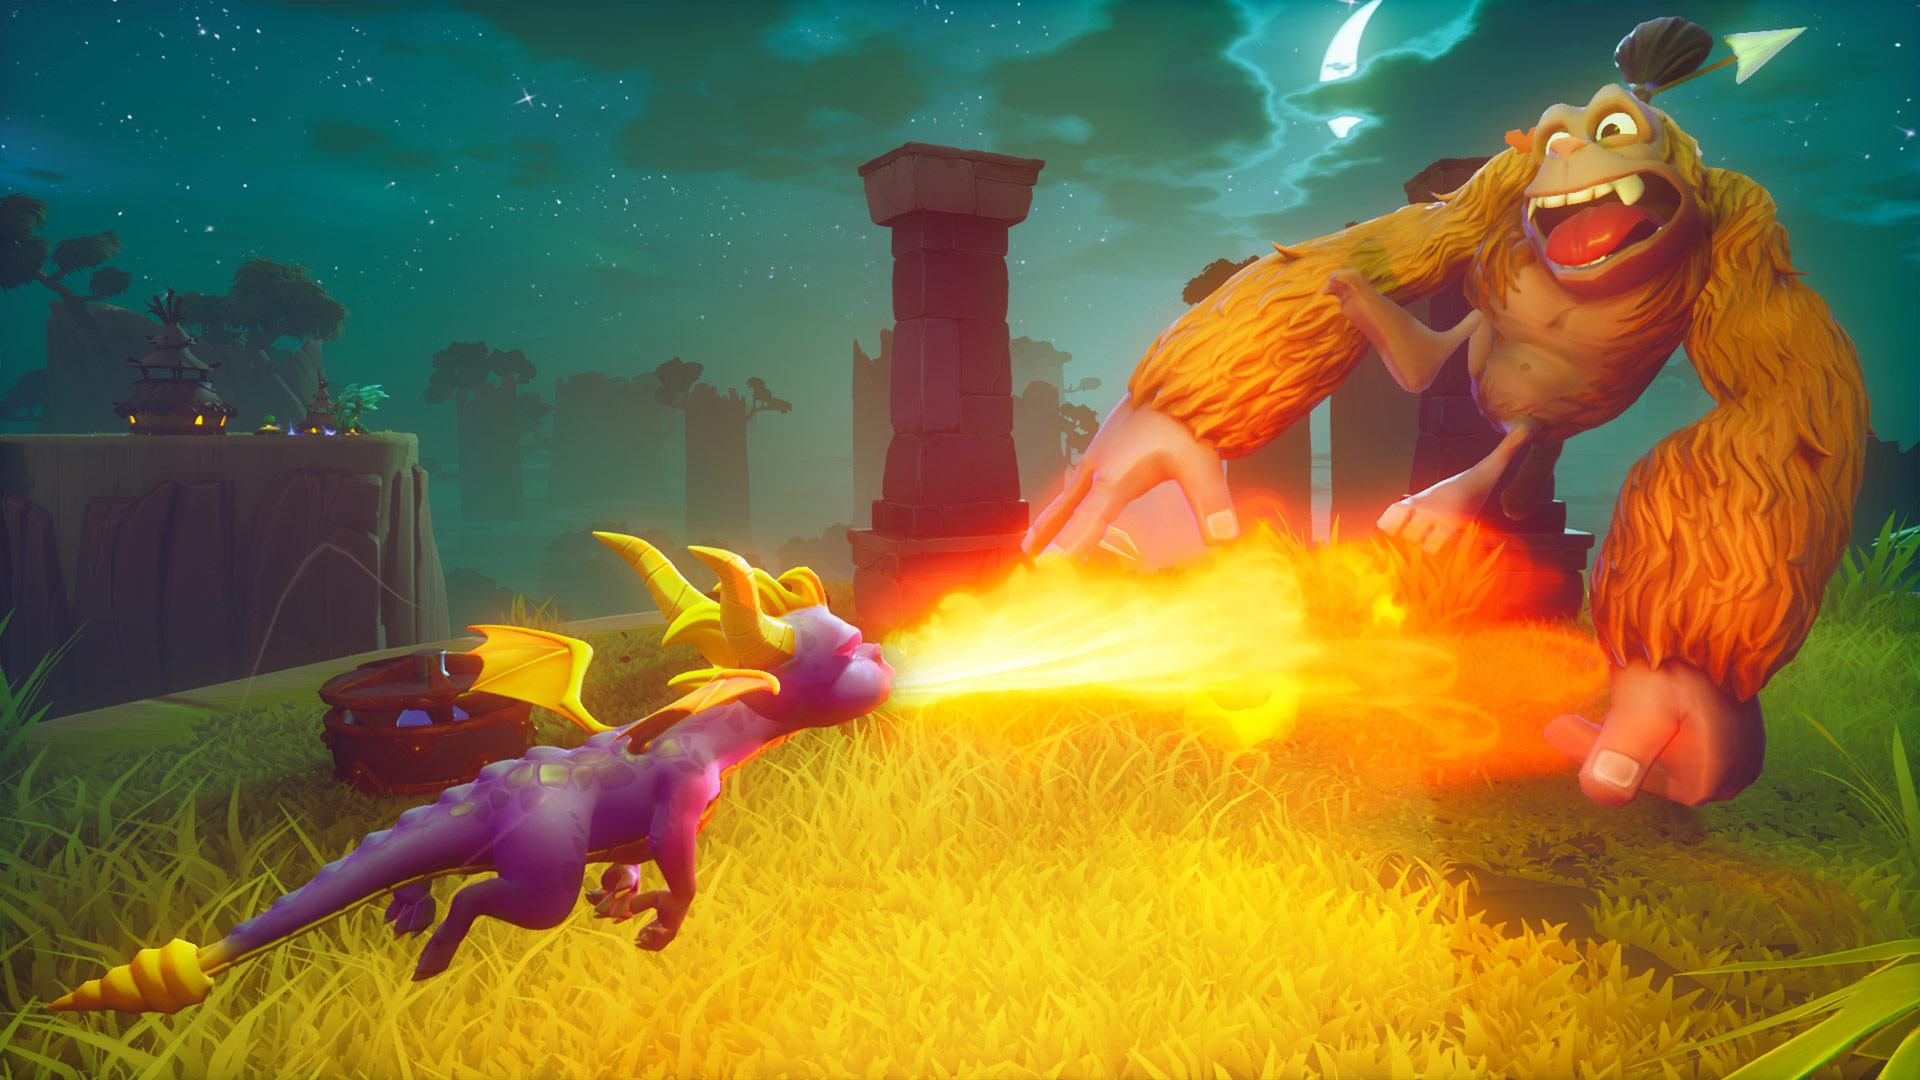 Spyro Reignited Trilogy [مراجعة] reignitedtrilogy1.jp